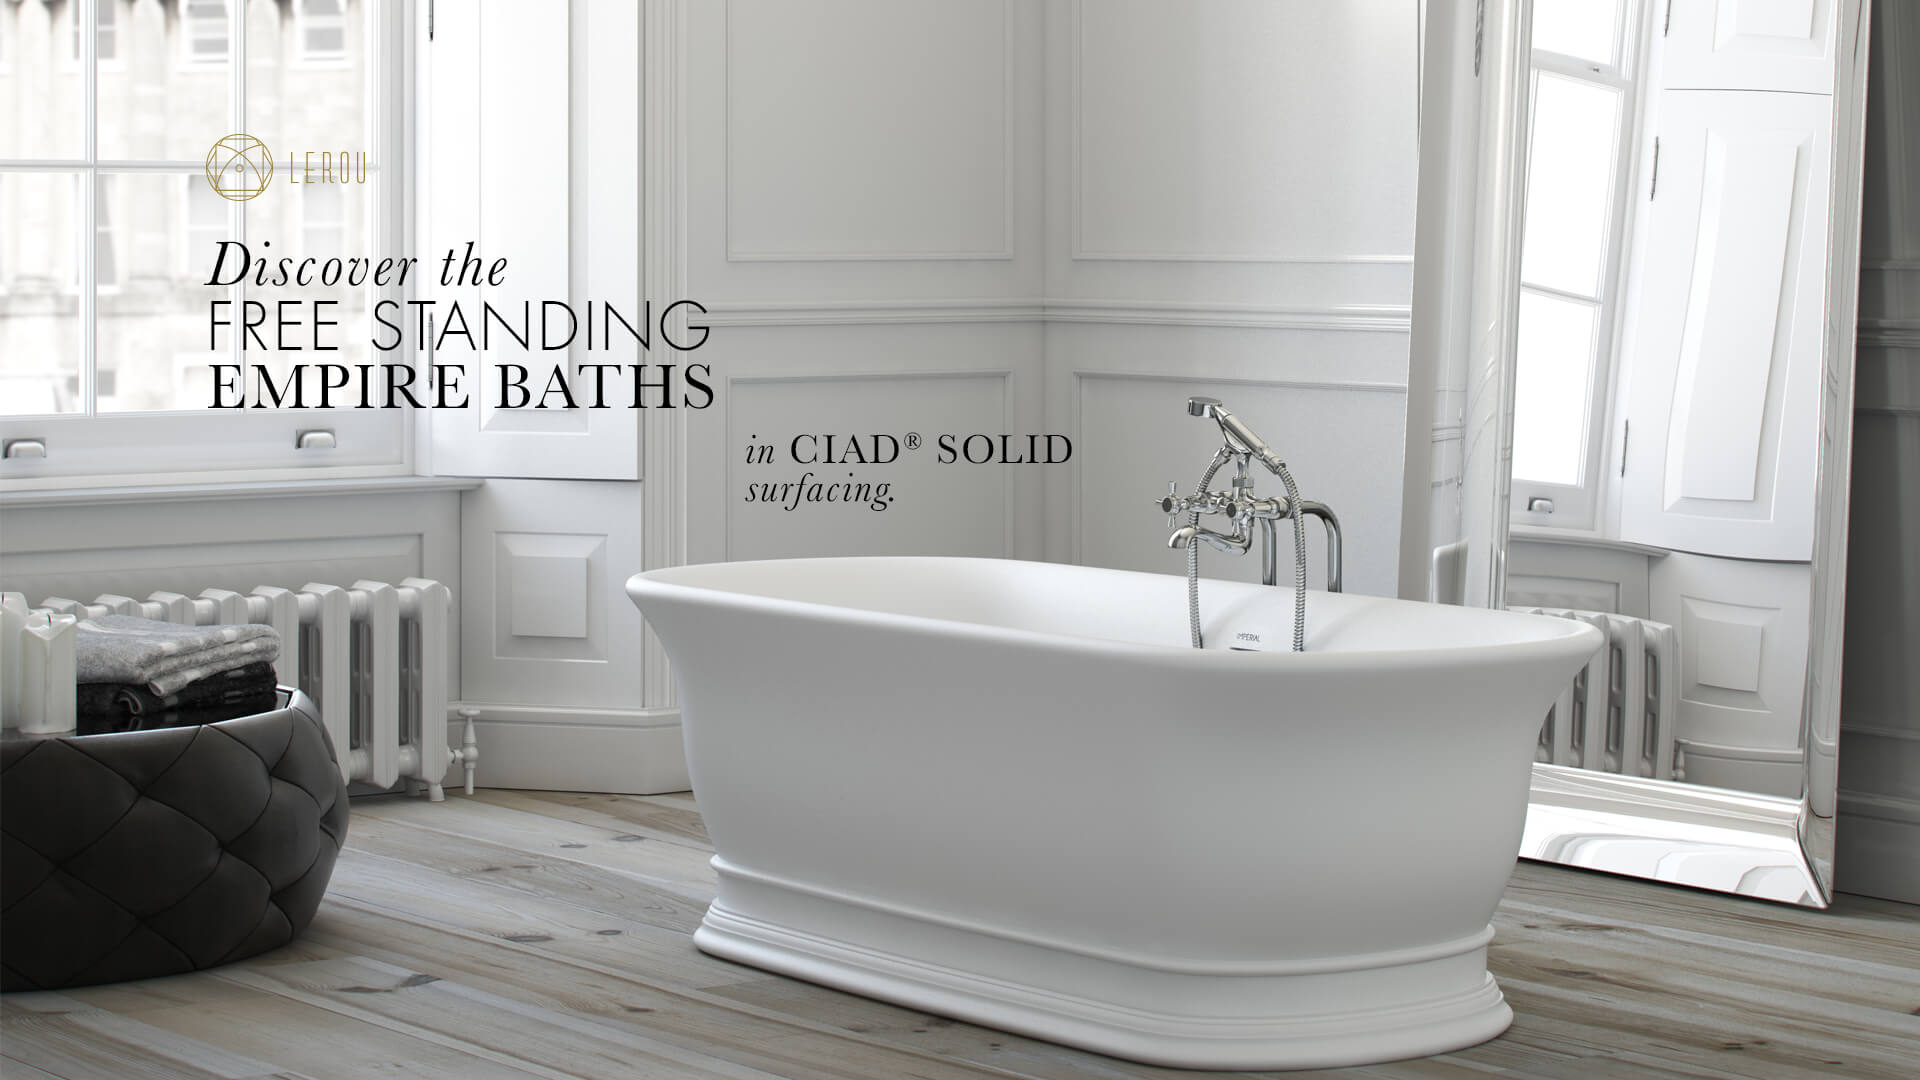 Lerou Free Standing Empire Baths in CIAD® Solid Surfacing. Lerou vrijstaande Empire baden in CIAD® Solid oppervlakte.